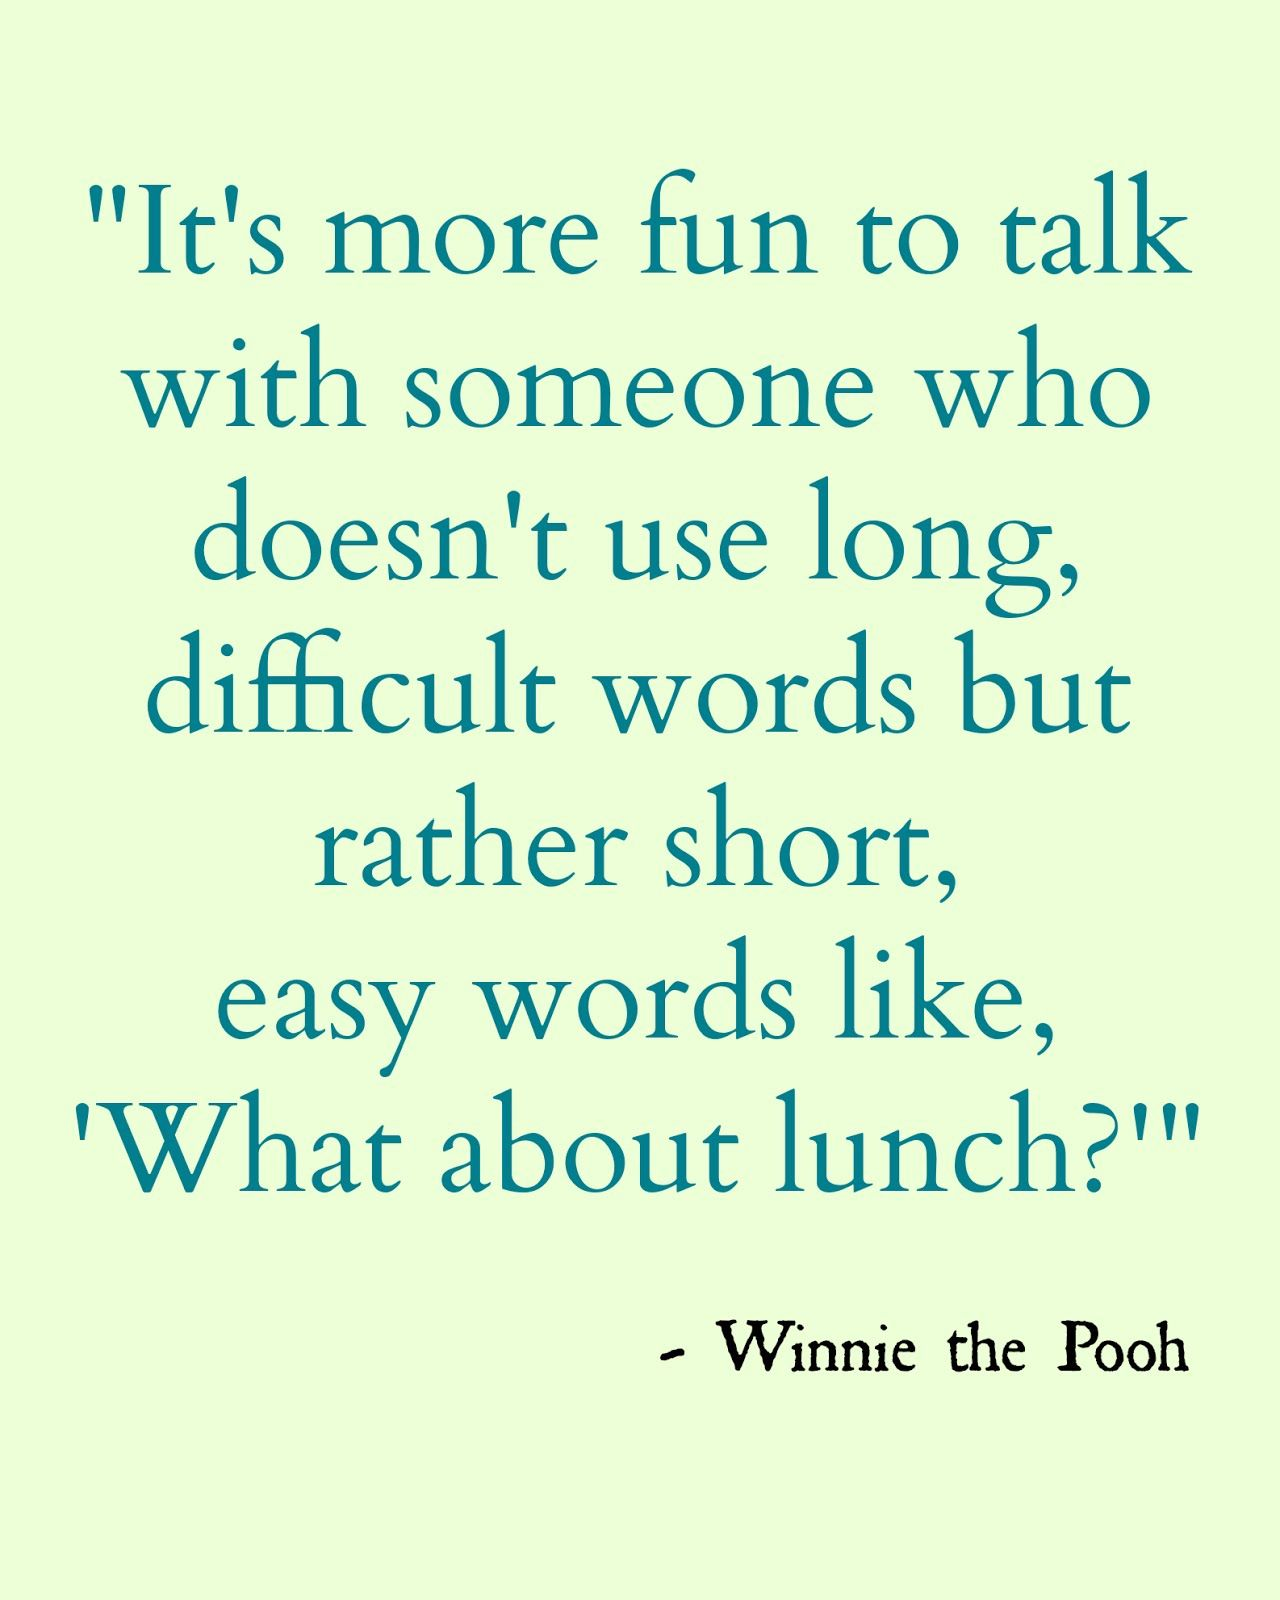 Tigger Tails for National Winnie the Pooh Day!! | Pooh quotes, Words,  Winnie the pooh quotes